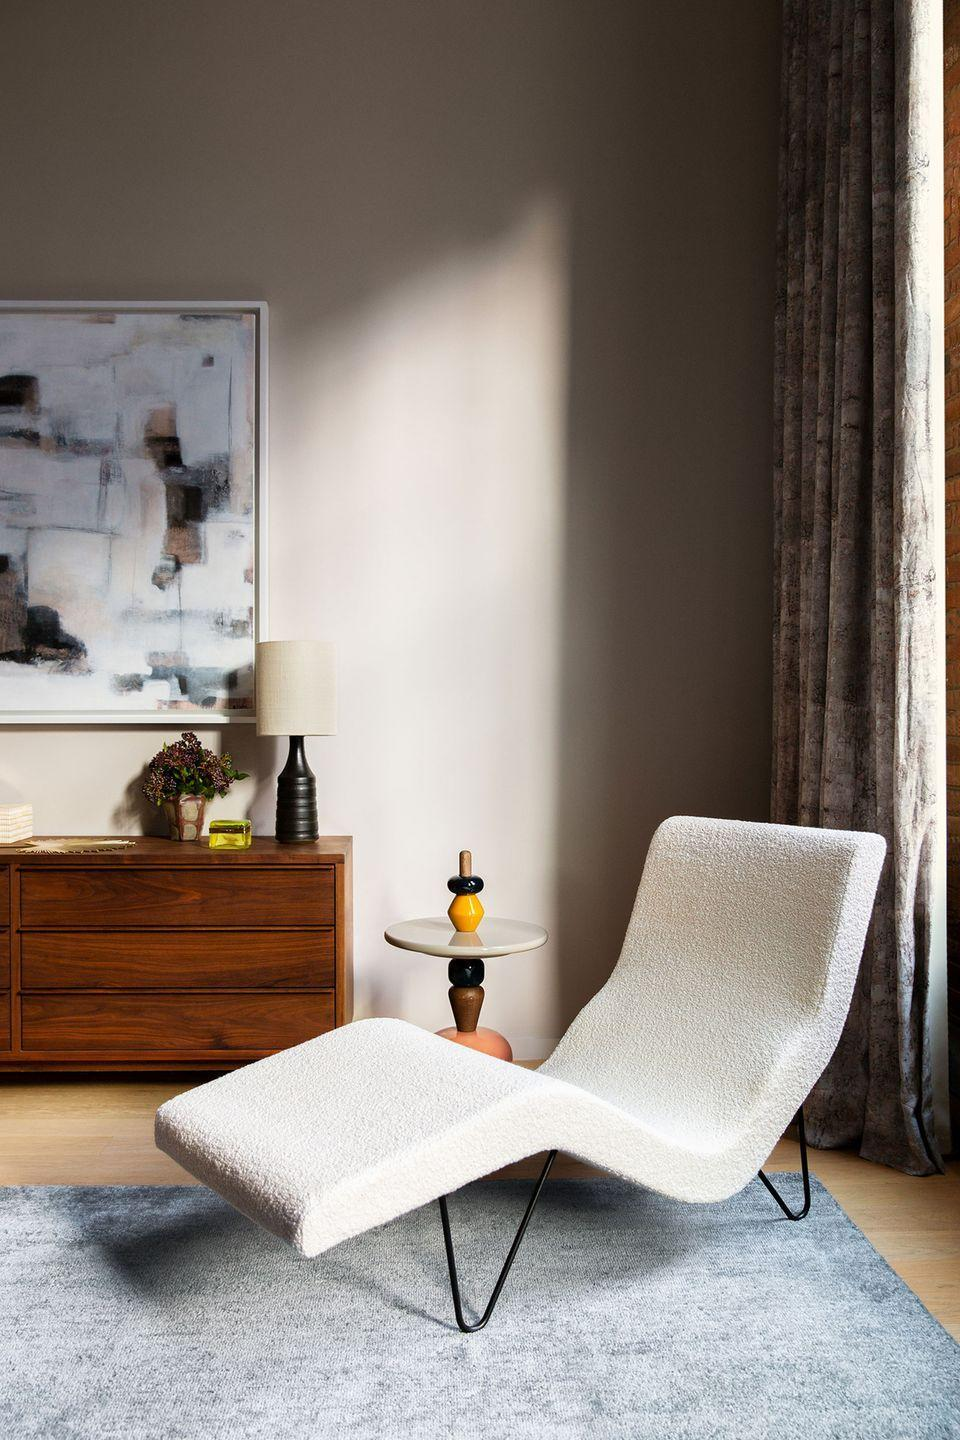 "<p>""I'm not sure it's a trend, but I'm personally gravitating toward more neutrals than I have in a long time, and feel like clients are, too,"" says New York designer <a href=""https://www.bellamancinidesign.com/"" rel=""nofollow noopener"" target=""_blank"" data-ylk=""slk:Bella Mancini"" class=""link rapid-noclick-resp"">Bella Mancini</a>, who is leaning toward moodier living room walls that highlight Farrow & Ball's <a href=""https://www.farrow-ball.com/en-us/paint-colours/old-white"" rel=""nofollow noopener"" target=""_blank"" data-ylk=""slk:Old White"" class=""link rapid-noclick-resp"">Old White</a> and <a href=""https://www.farrow-ball.com/en-us/archived-paint/clunch"" rel=""nofollow noopener"" target=""_blank"" data-ylk=""slk:Clunch"" class=""link rapid-noclick-resp"">Clunch</a>.</p>"